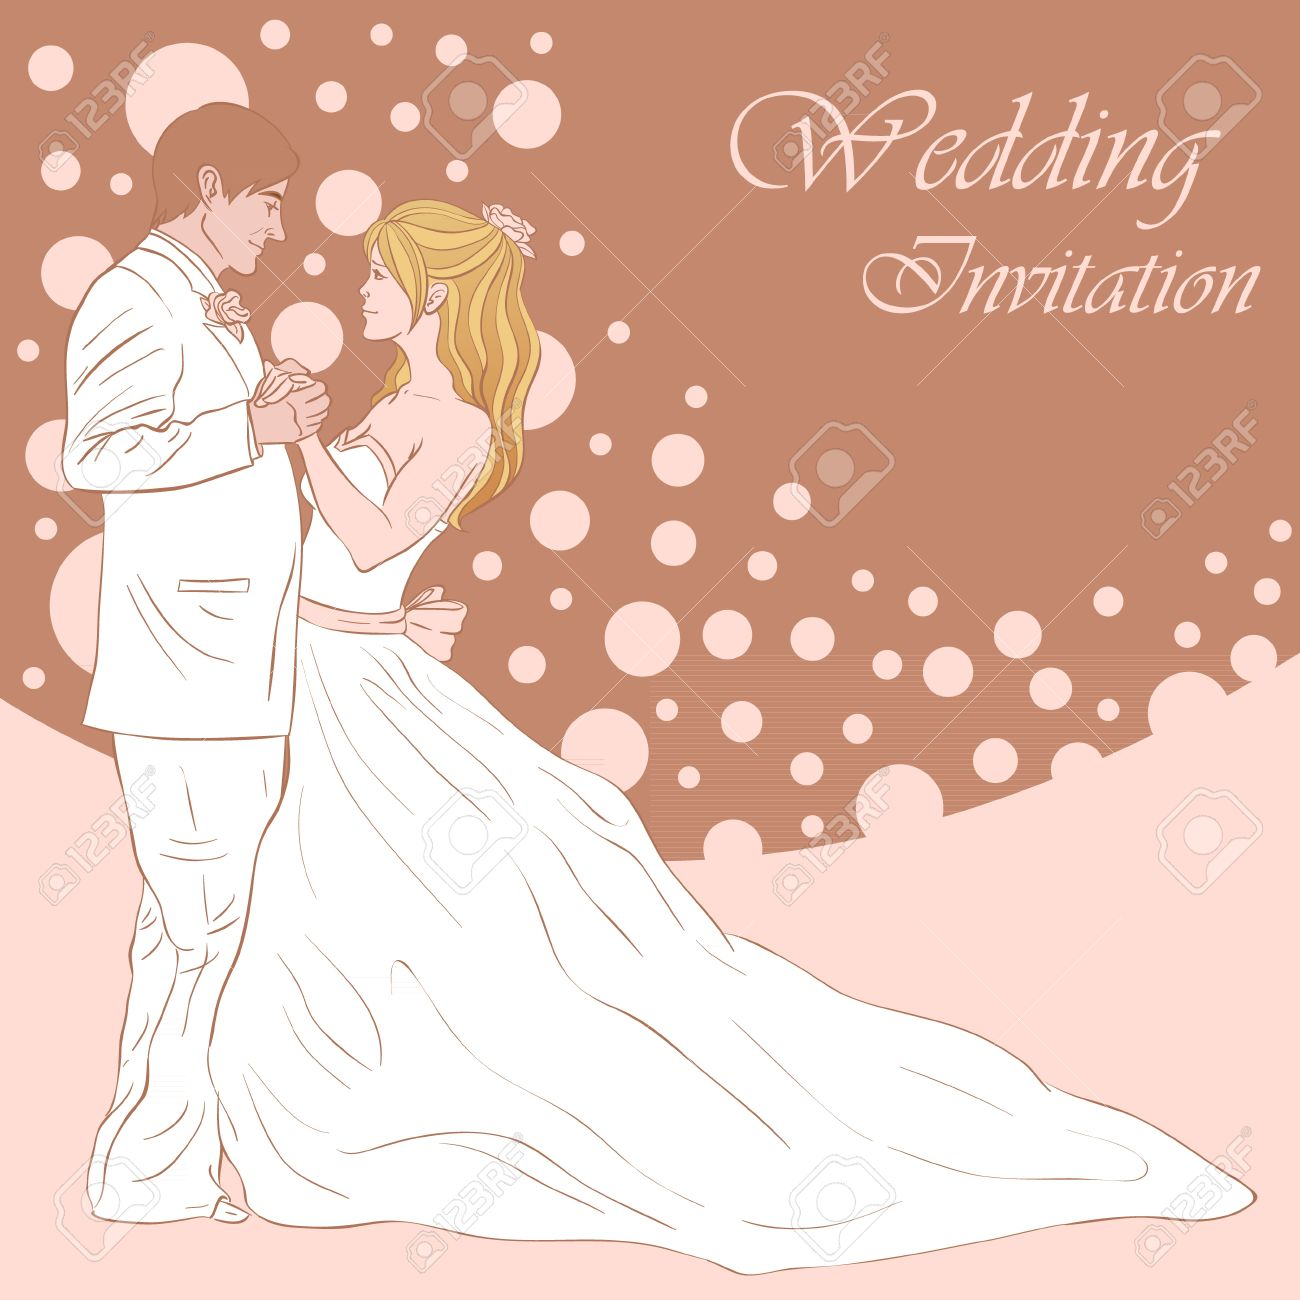 Bride And Groom Wedding Invitation Card On A Lovely Floral ...